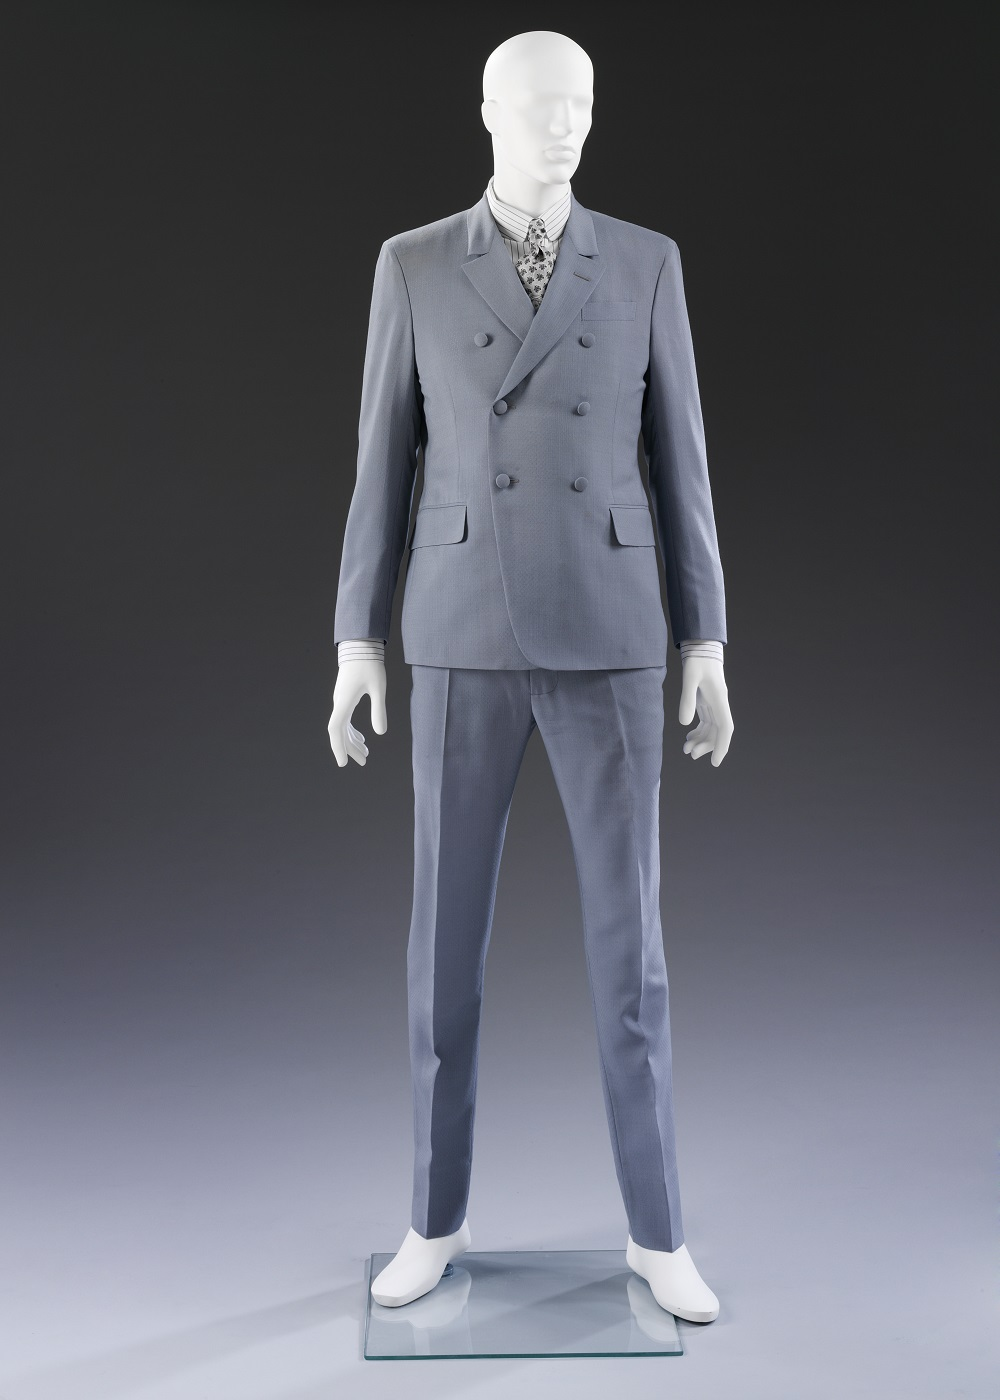 Double-breasted suit by Stefano Pilati for Yves Saint Laurent 9ad4e2c7944